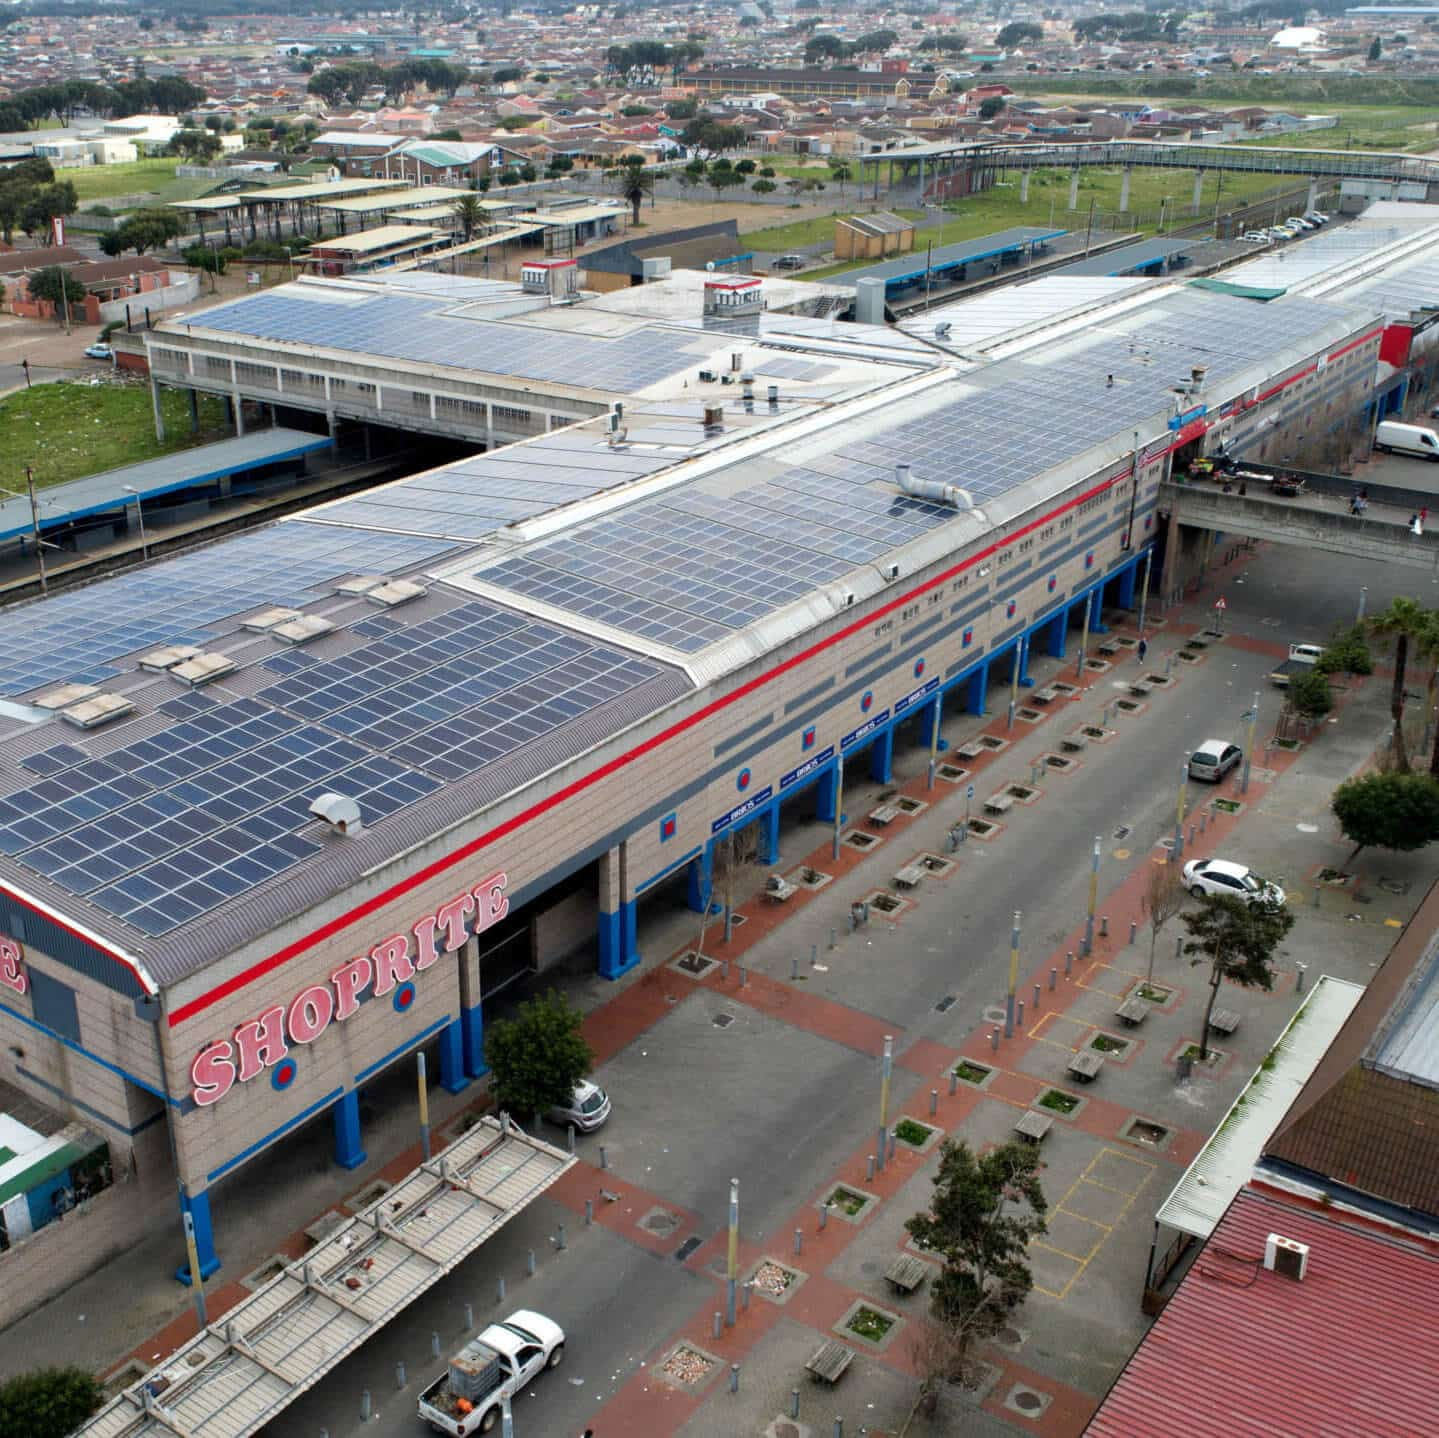 Biggest PV System in Mitchells Plain - Cape Town